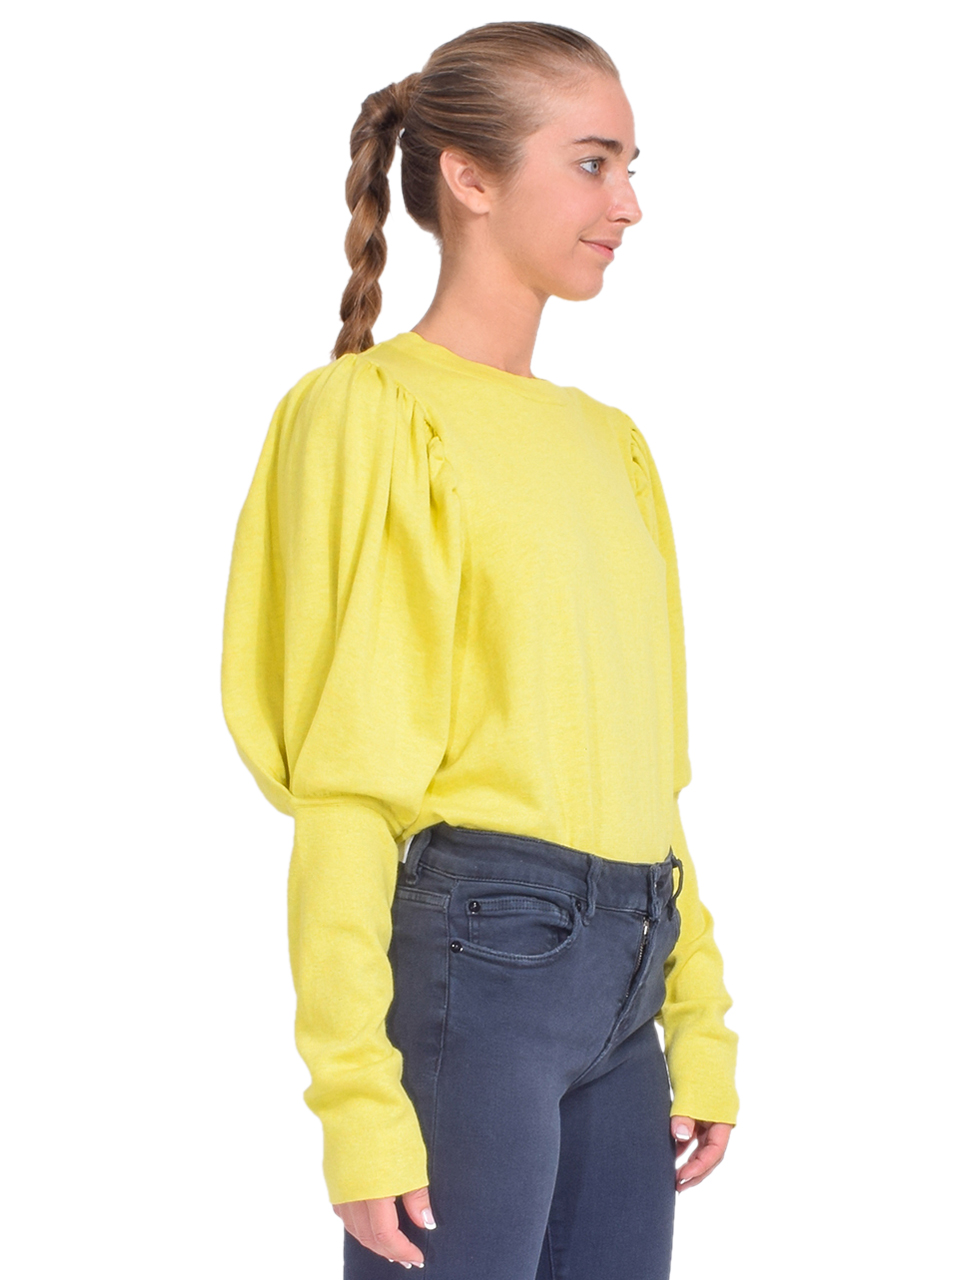 MISA Kali Sweater in Chartreuse